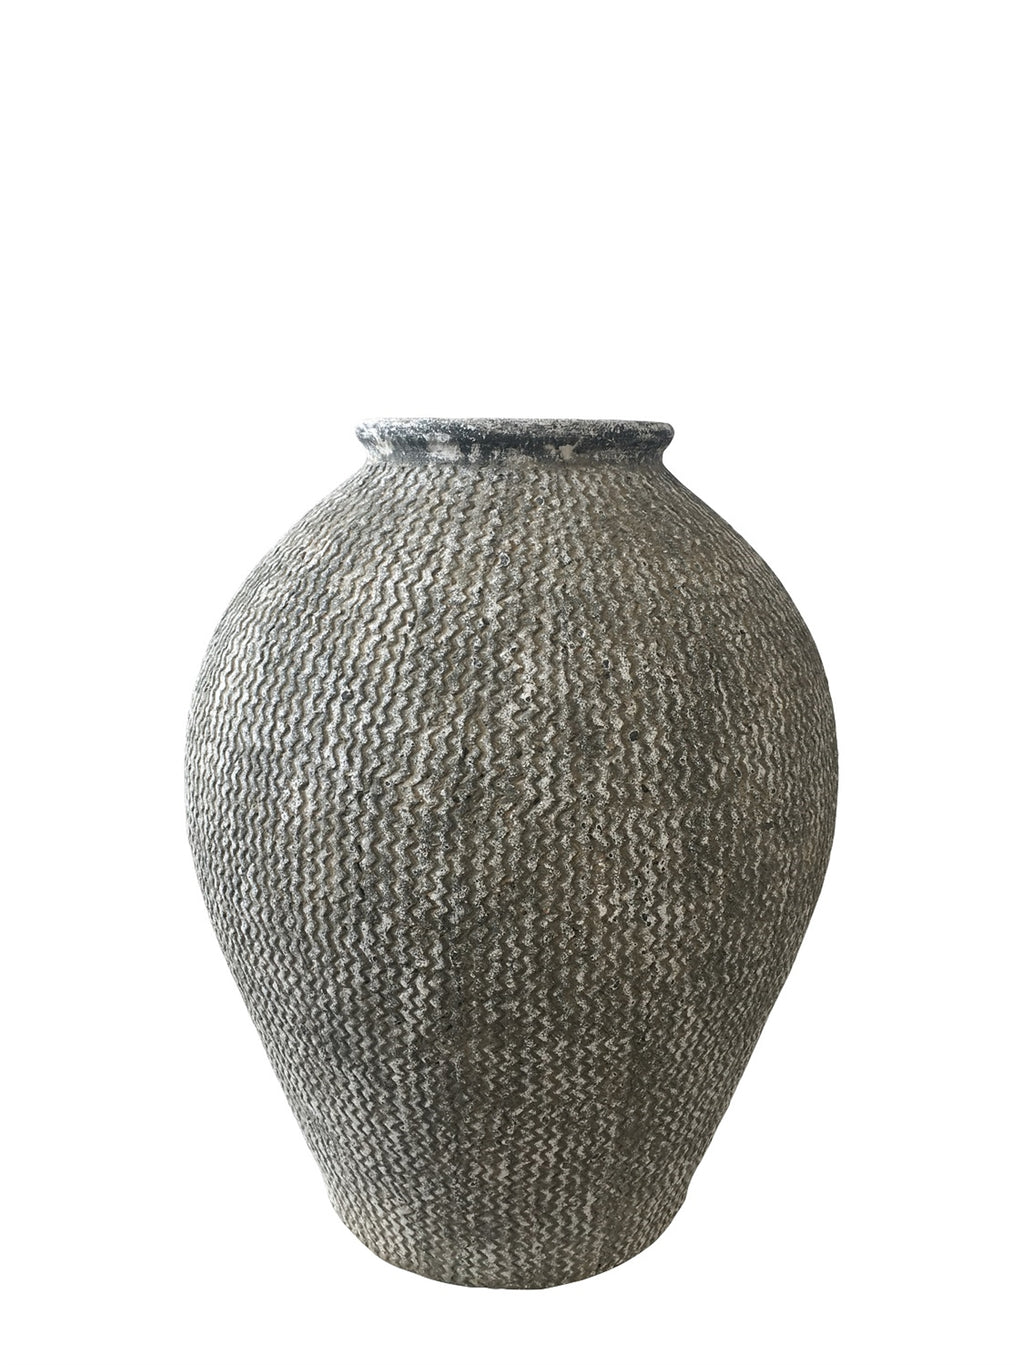 Lg. Ceramic Tall Terracotta Urn - AboutRuby.com